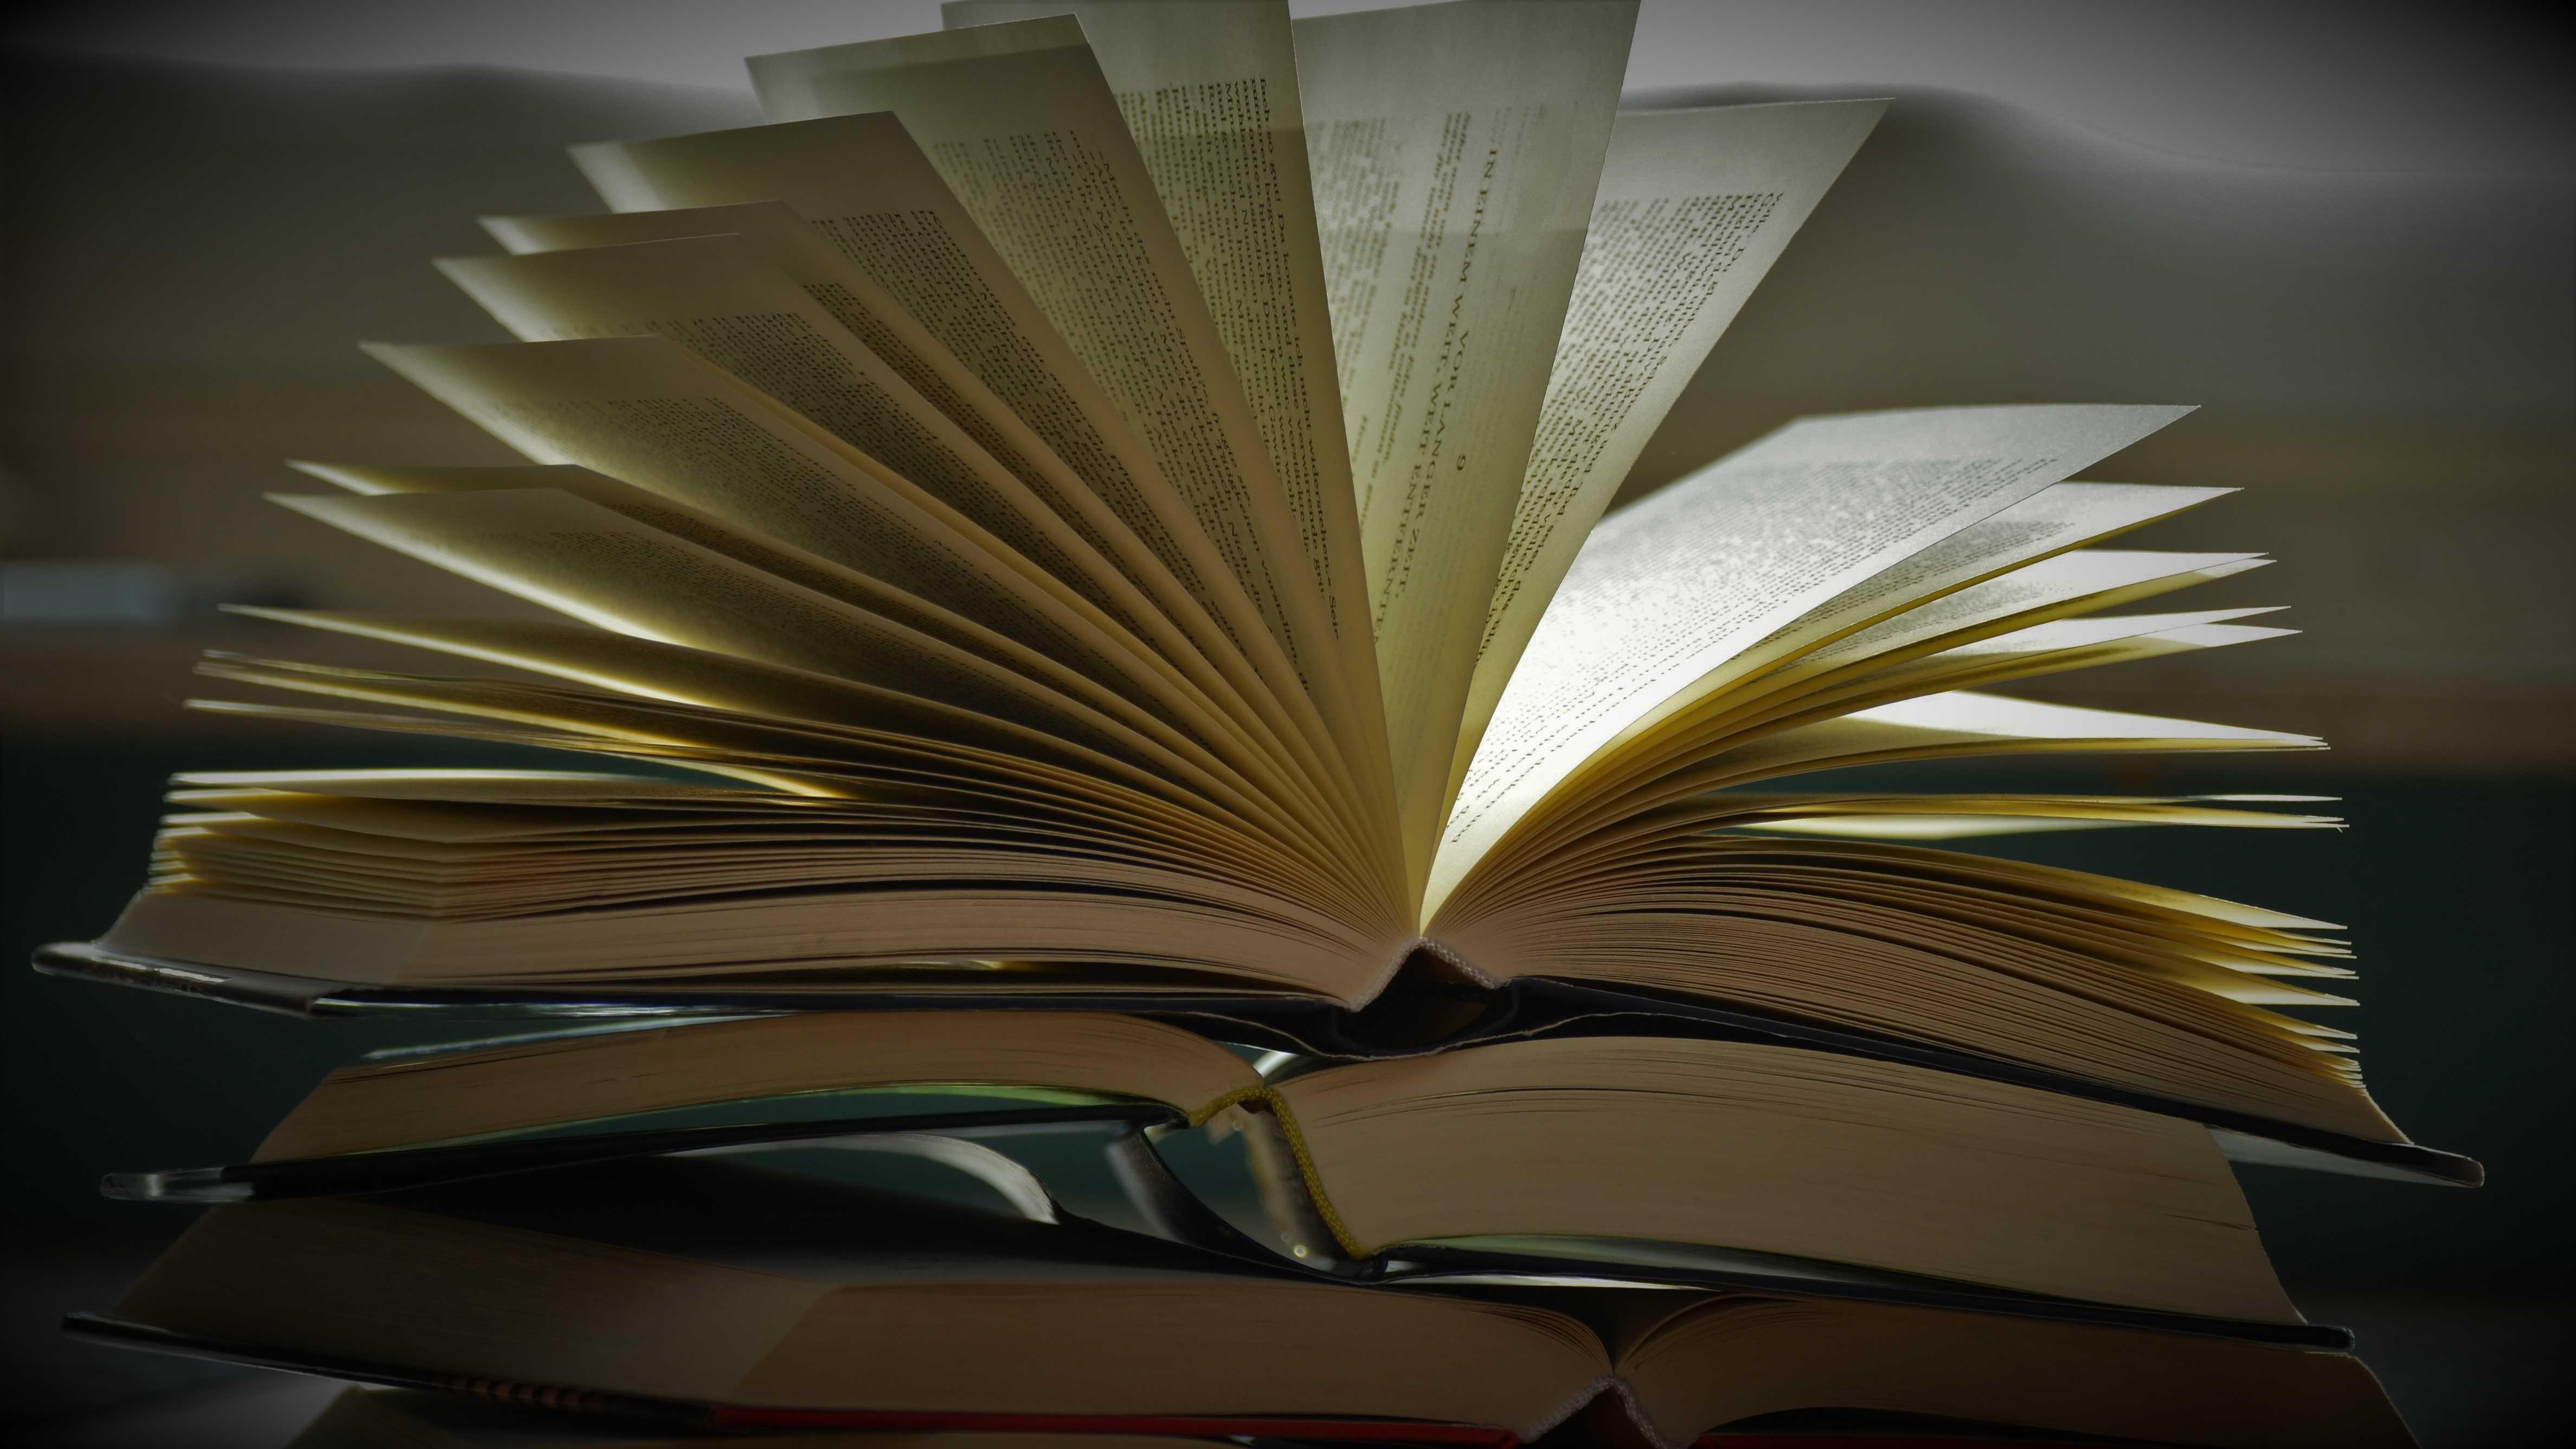 books book pages read literature